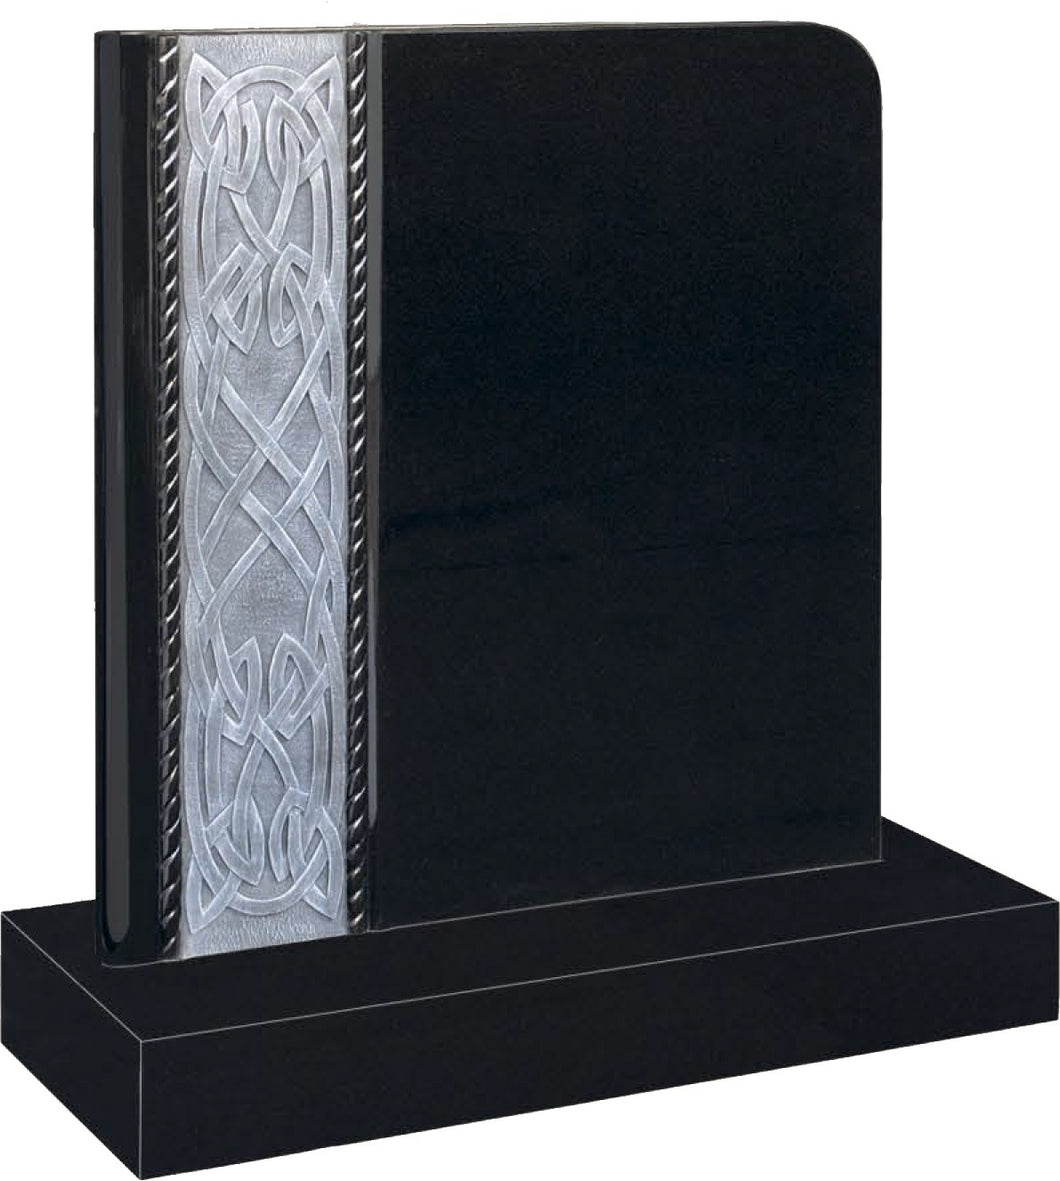 Celtic Book - Antique